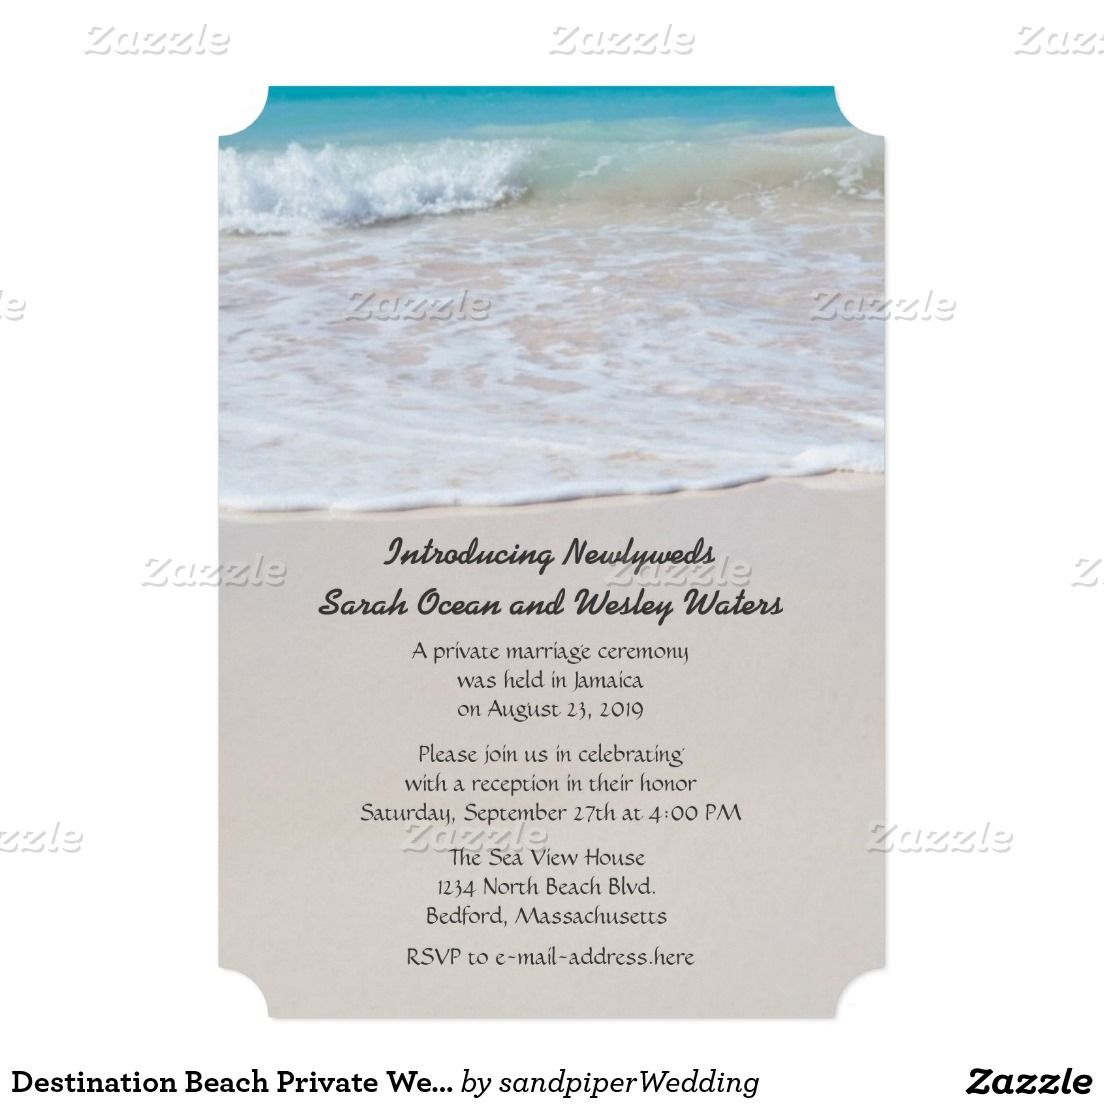 Ceremony And Reception Wedding Invitation Wording: Writing In The Sand Wedding Announcement